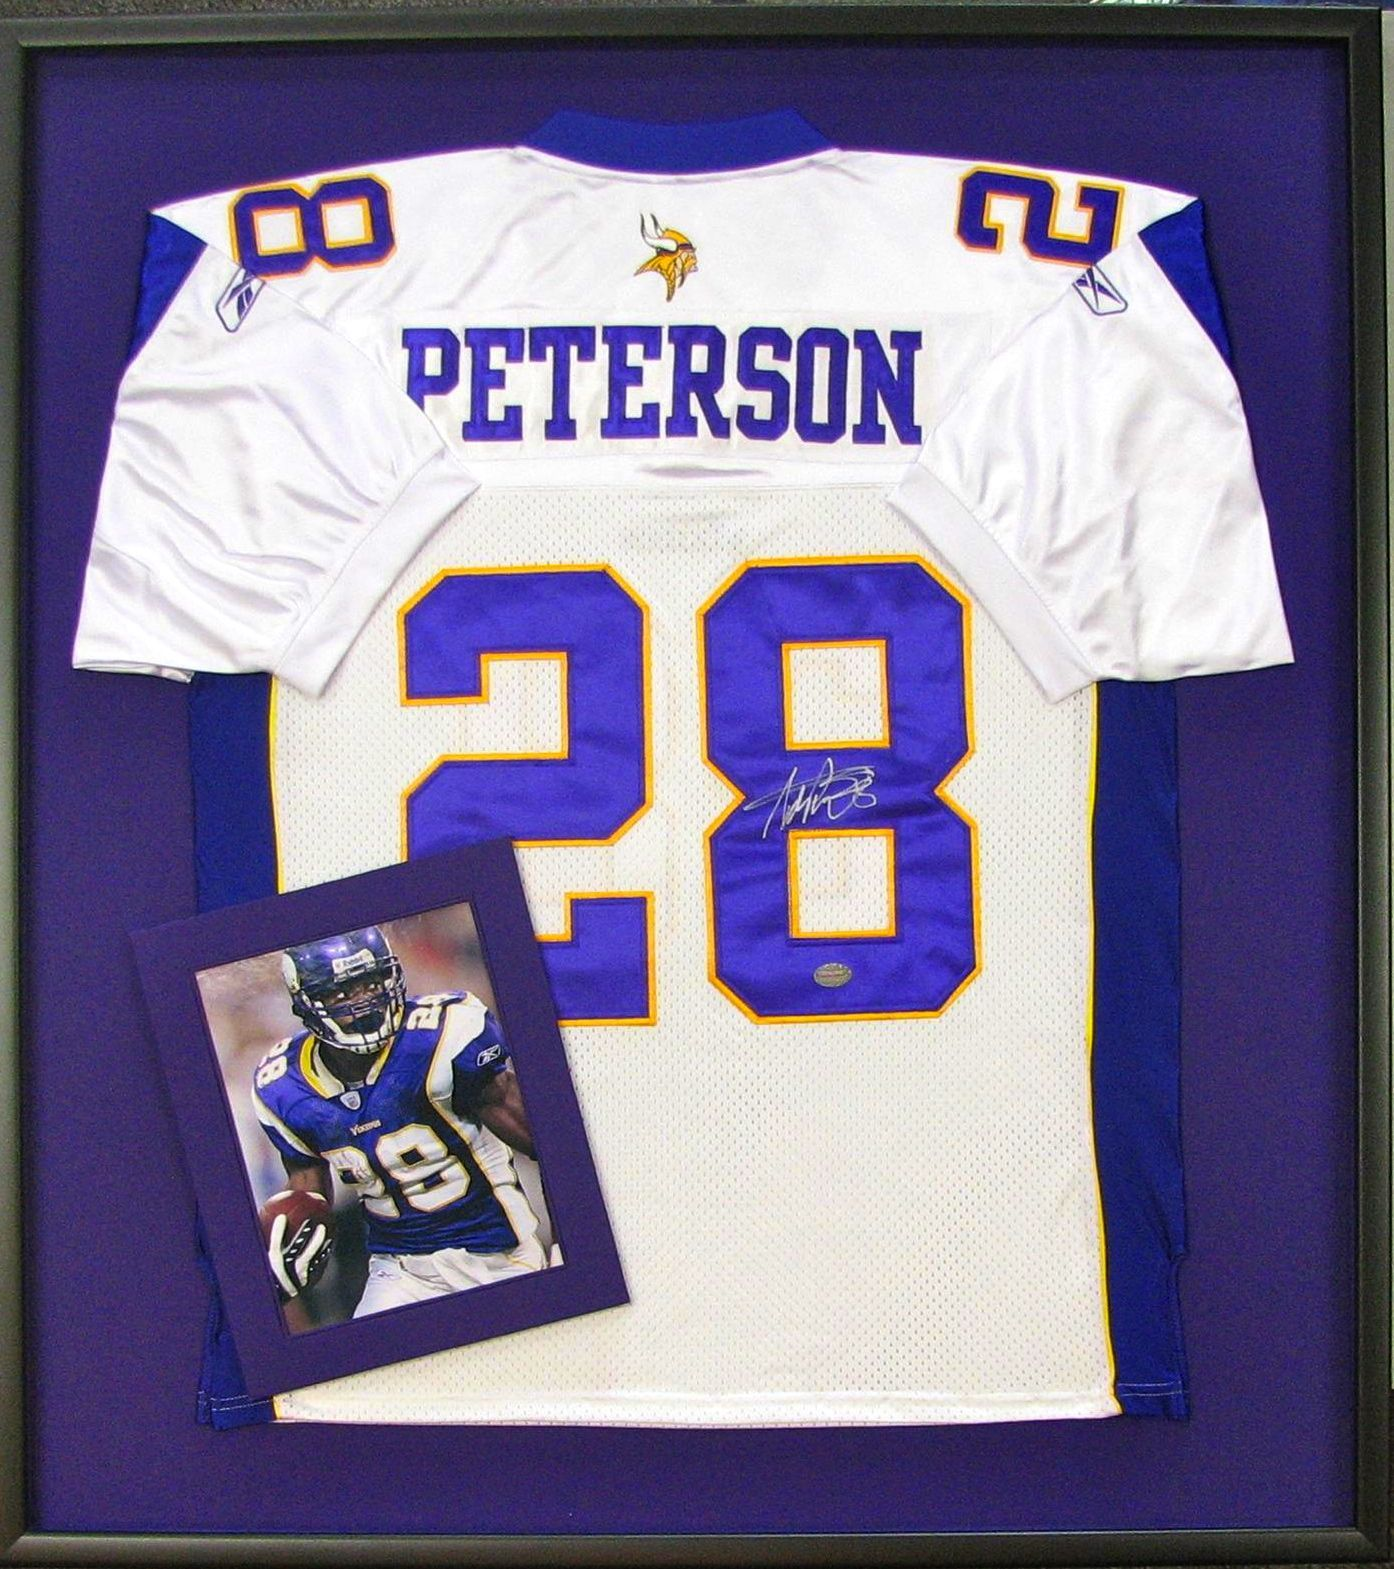 Adrian Peterson Jersey Picture frame shop, Framed jersey